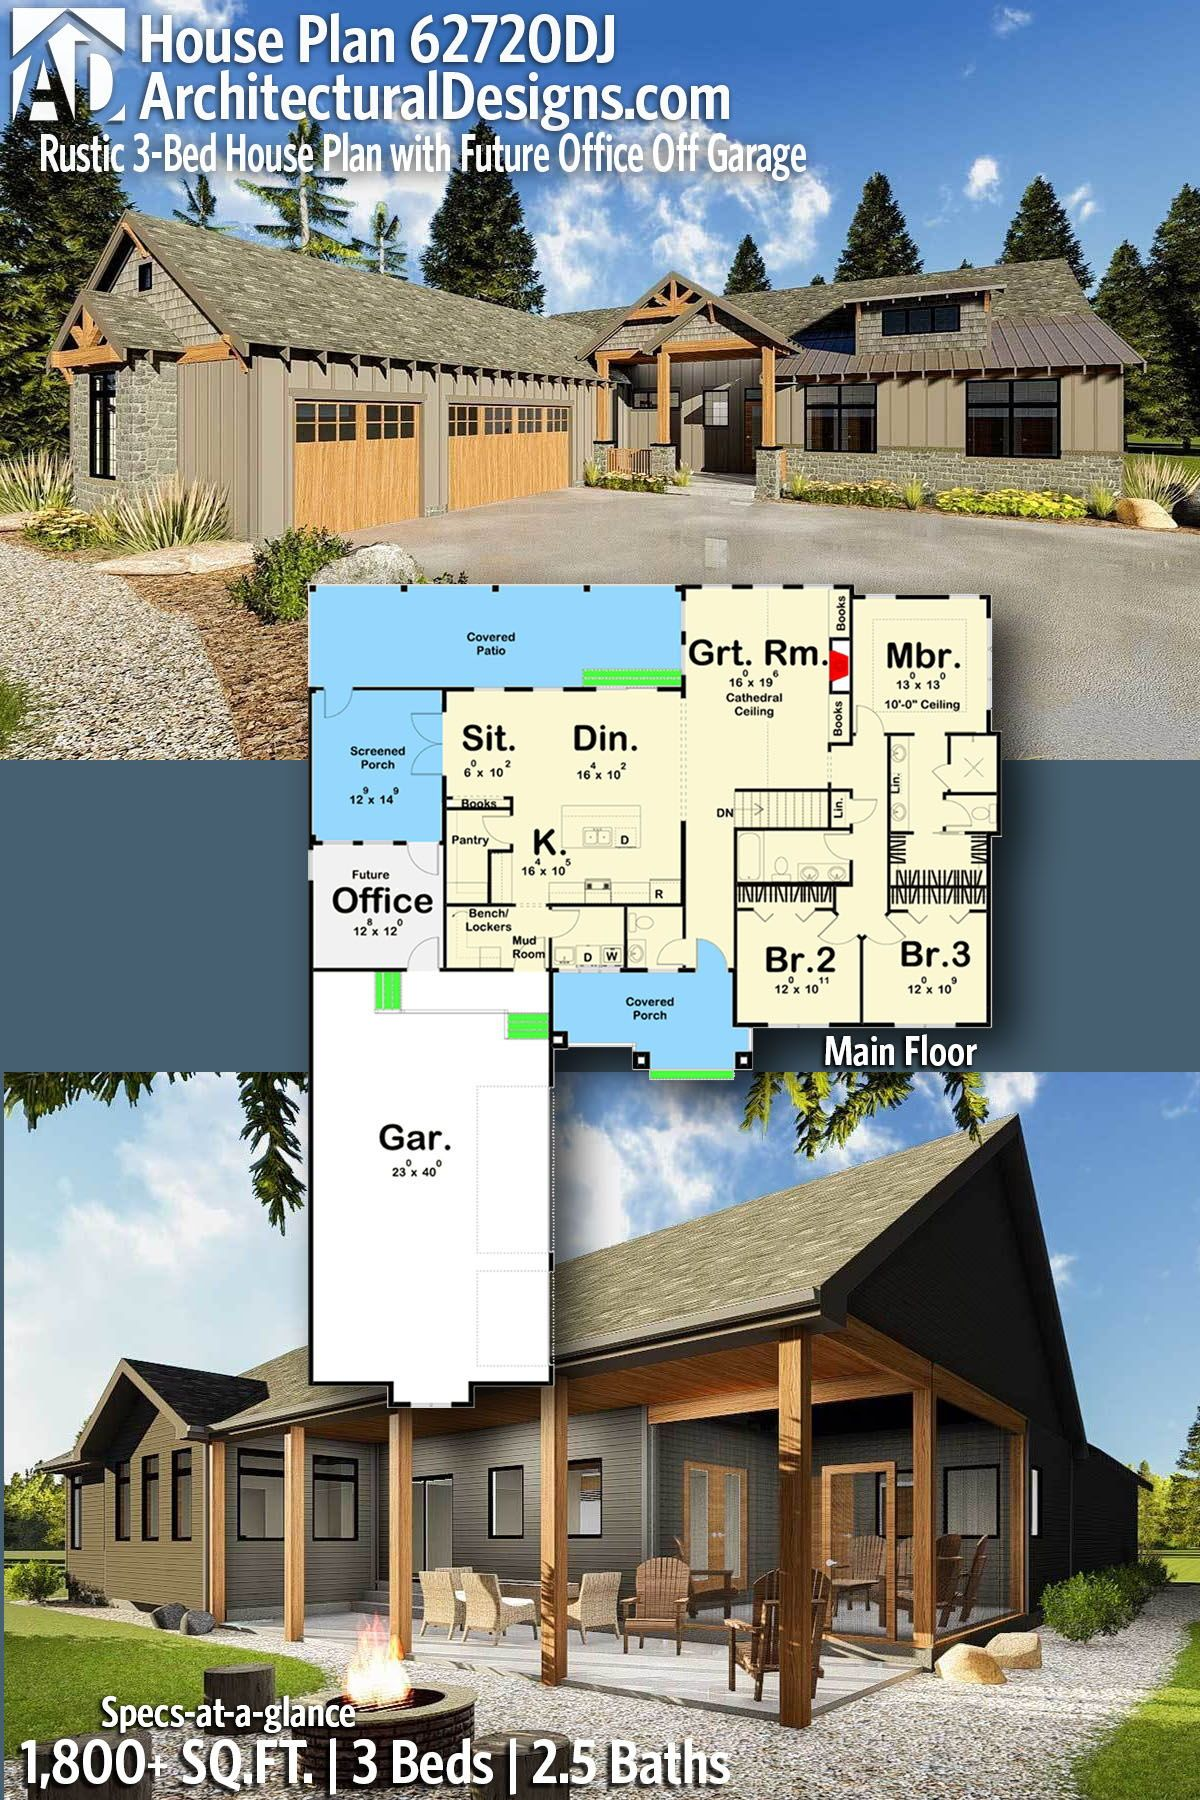 Plan 62720dj Rustic 3 Bed House With Future Office Off Garage Craftsman House Plans Rustic House Plans Mountain House Plans